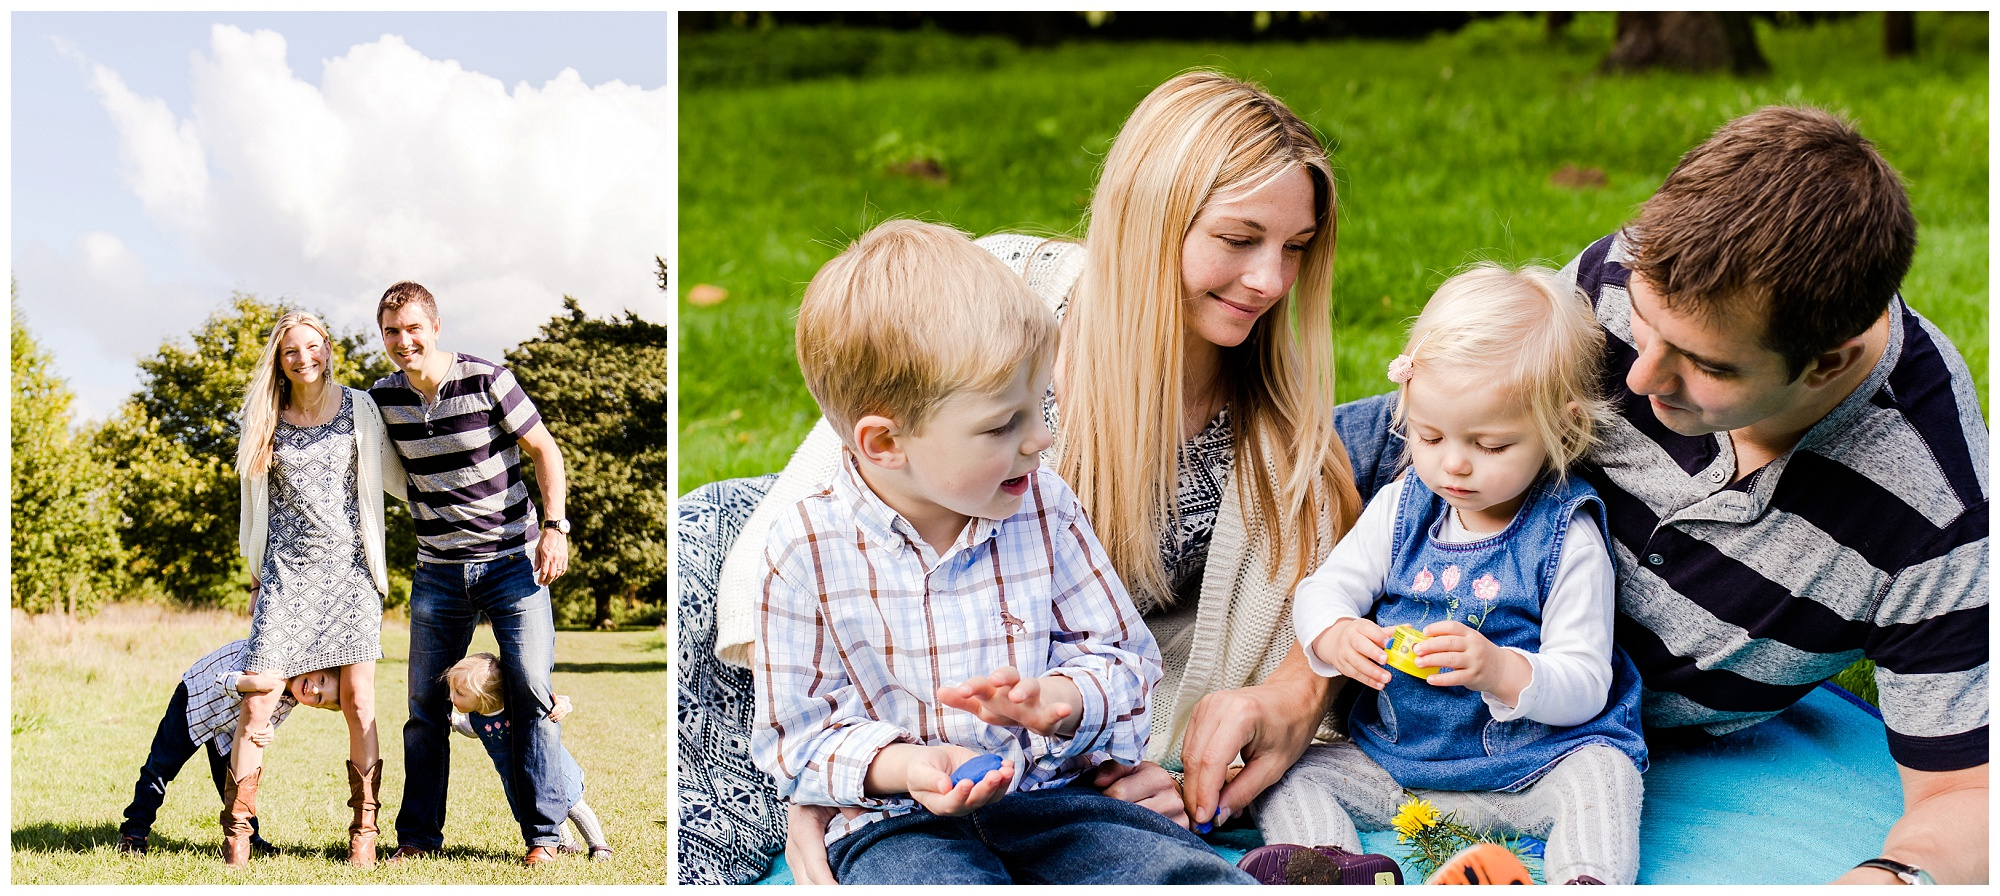 Family photography lifestyle Nonsuch Park